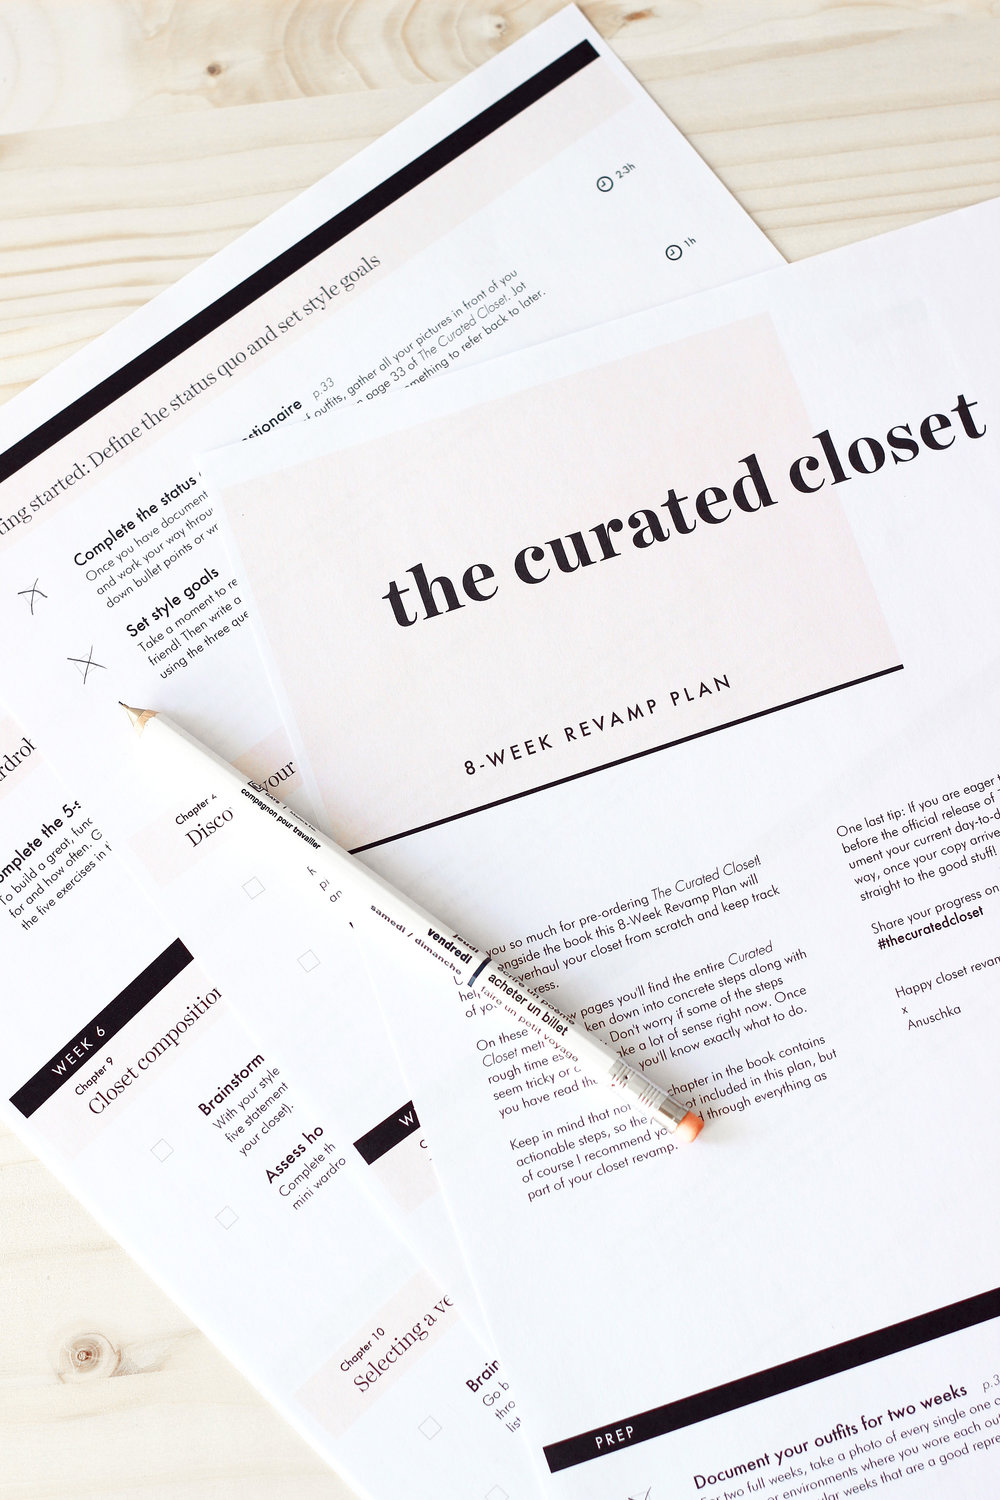 The Curated Closet 8-Week Revamp Plan (into-mind.com)